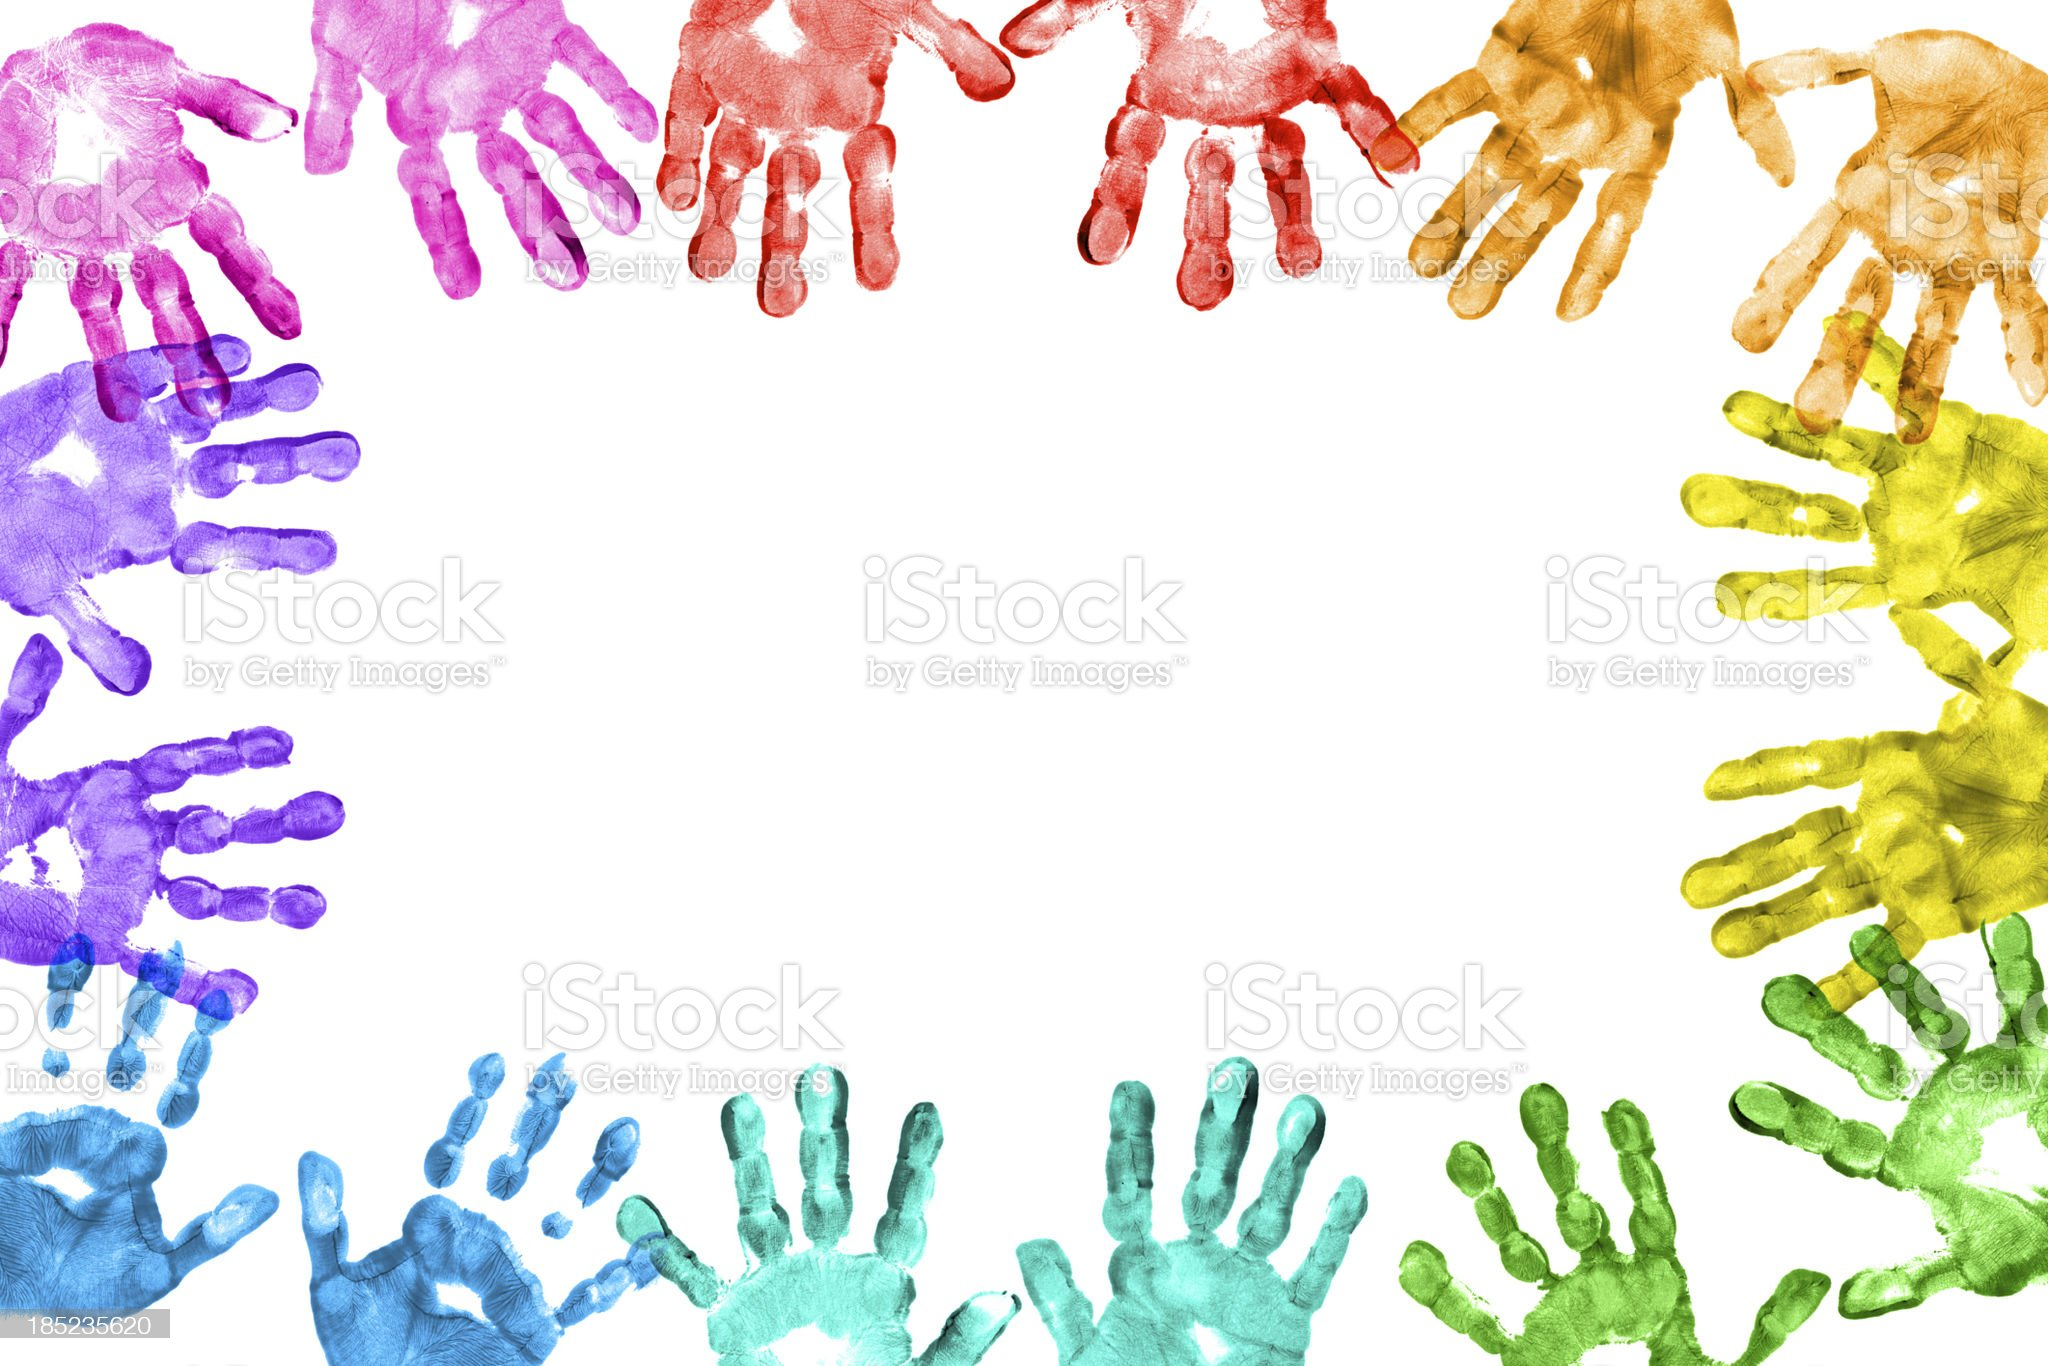 Colorful Children Hand Prints Frame royalty-free stock photo